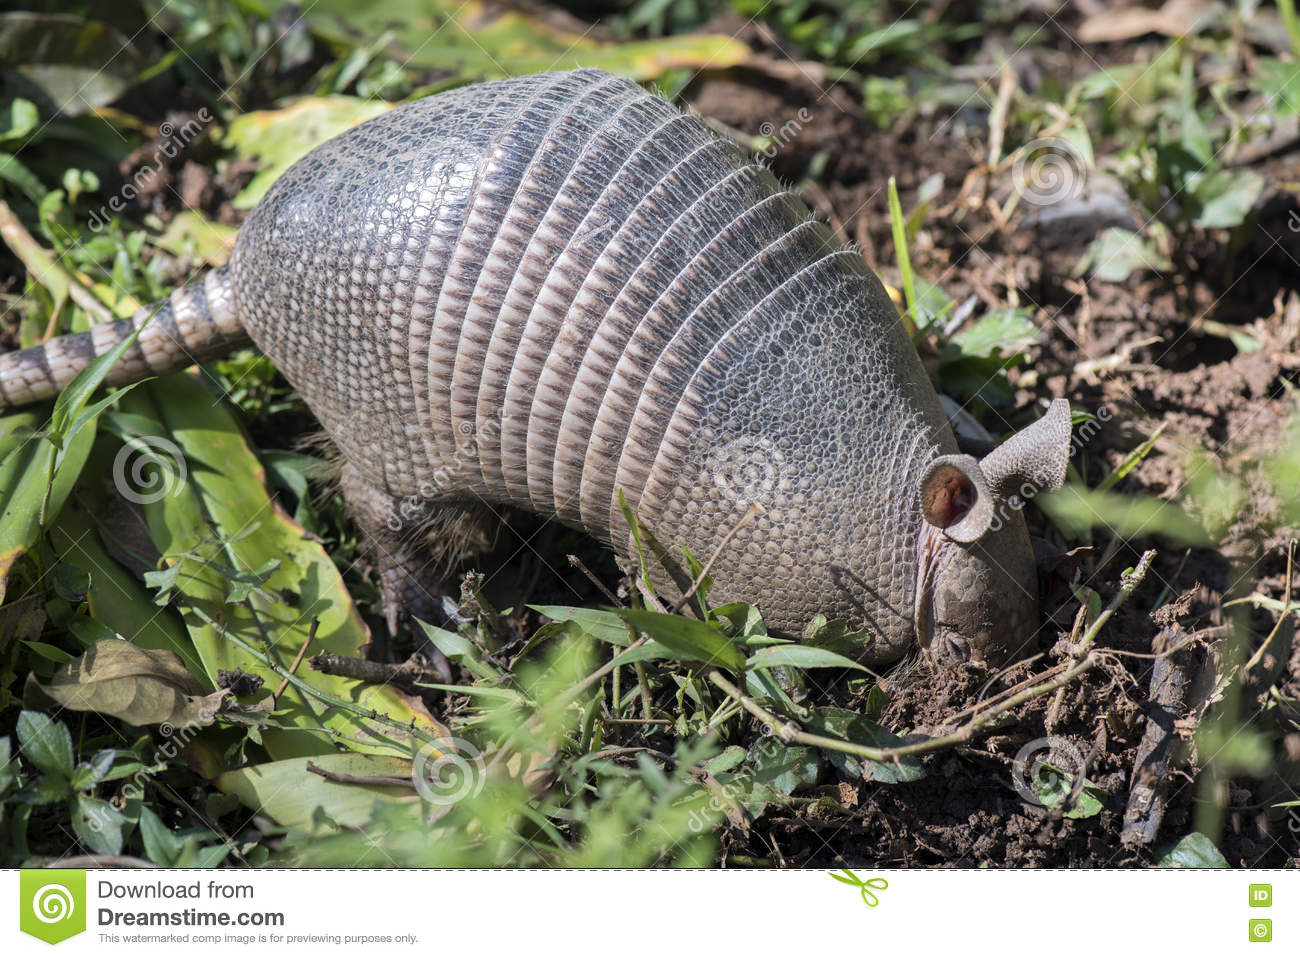 Armadillo searching for food in the field